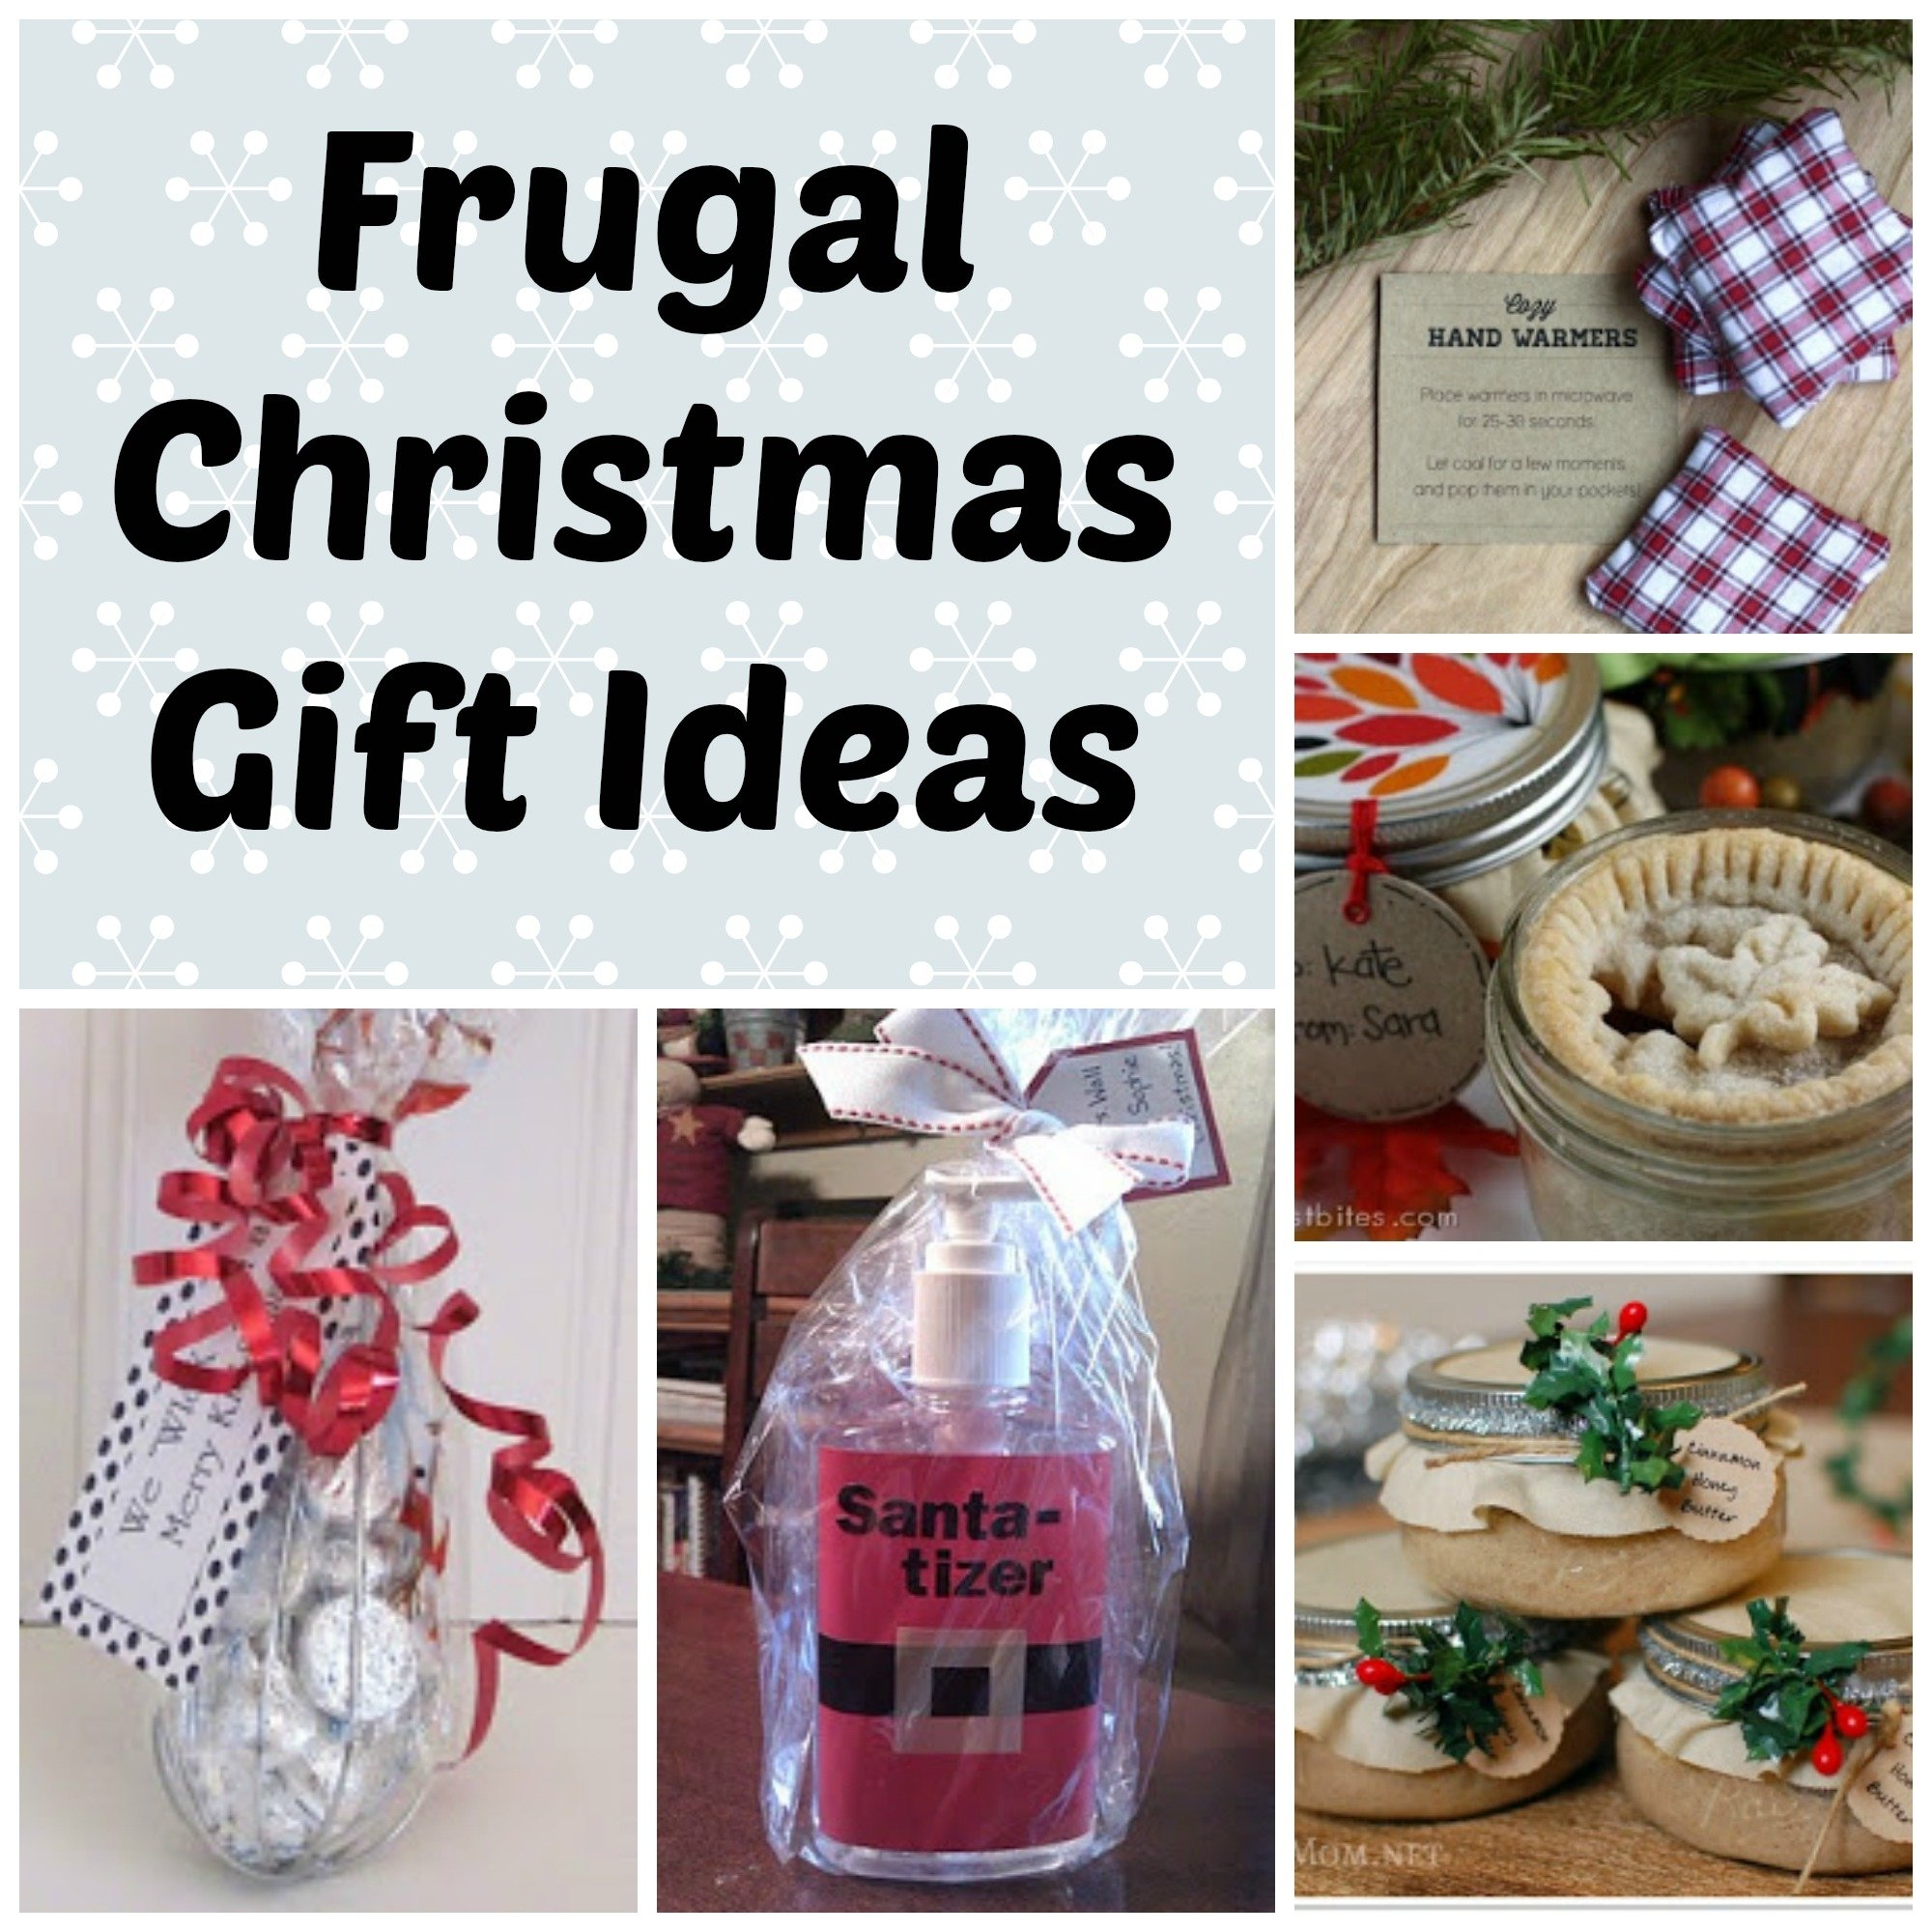 Imágenes de Small Christmas Gift Ideas For Friends